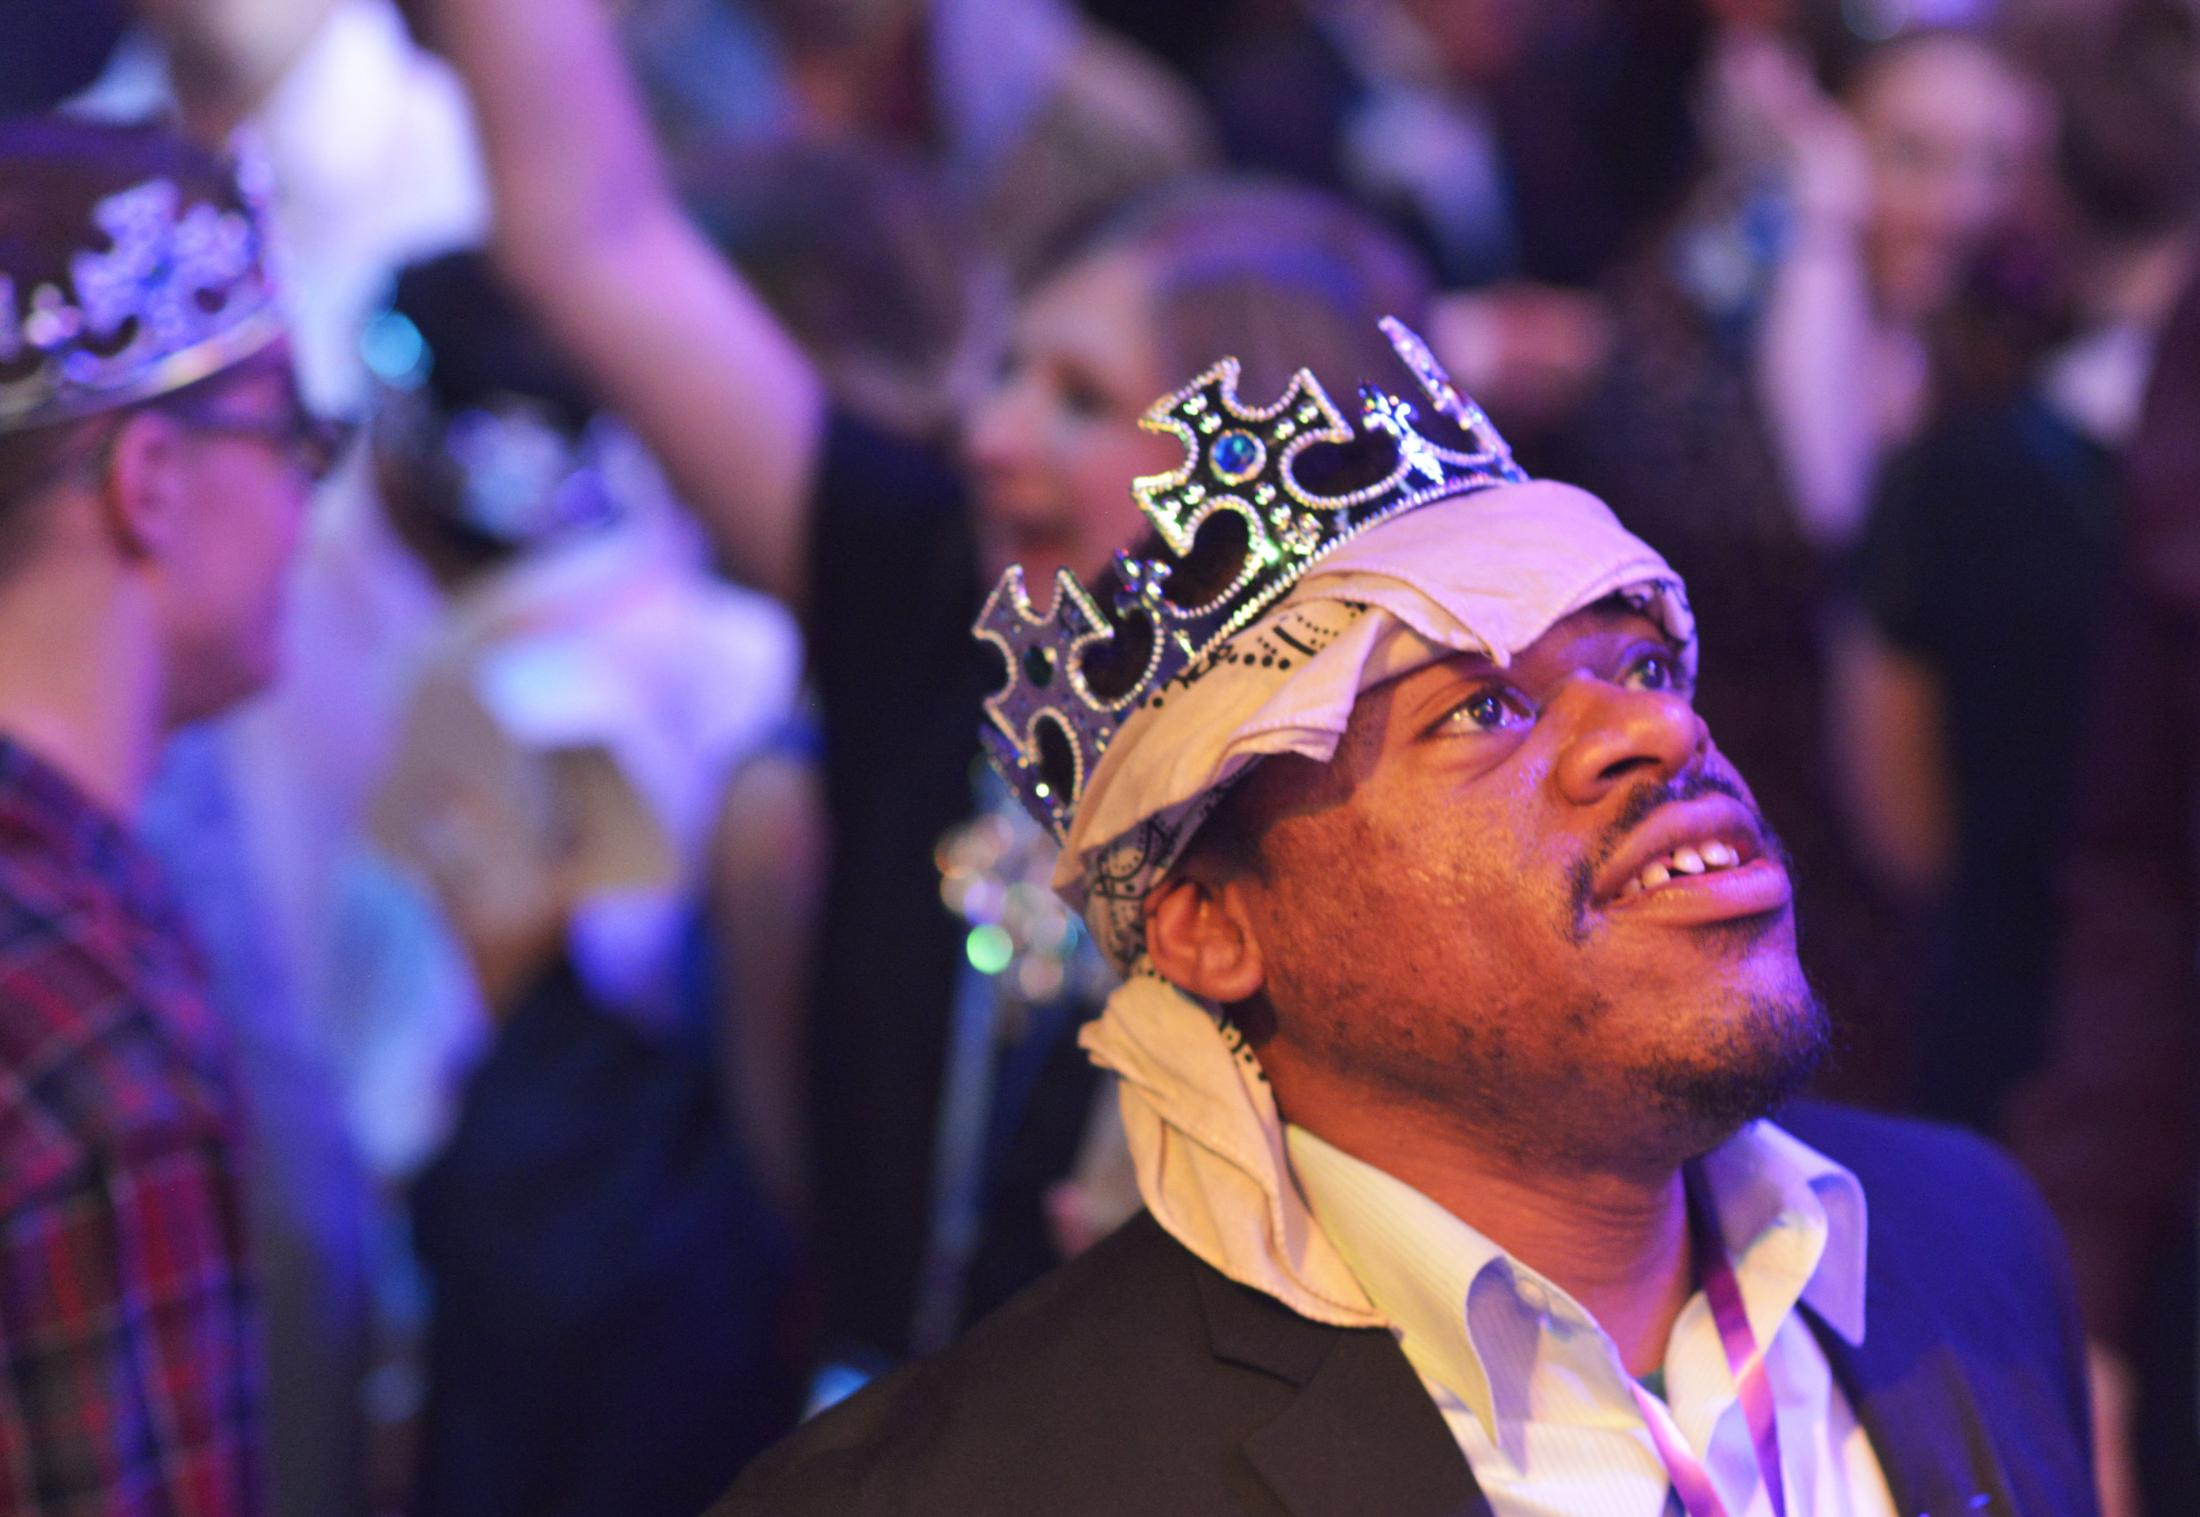 """Gary Jackson looks to the light show in awe after being crowned one of the prom kings Friday at the Night to Shine dance at The Crossing in Columbia. """"I am the king,"""" Jackson said. """"Now I just need to find my queen."""""""